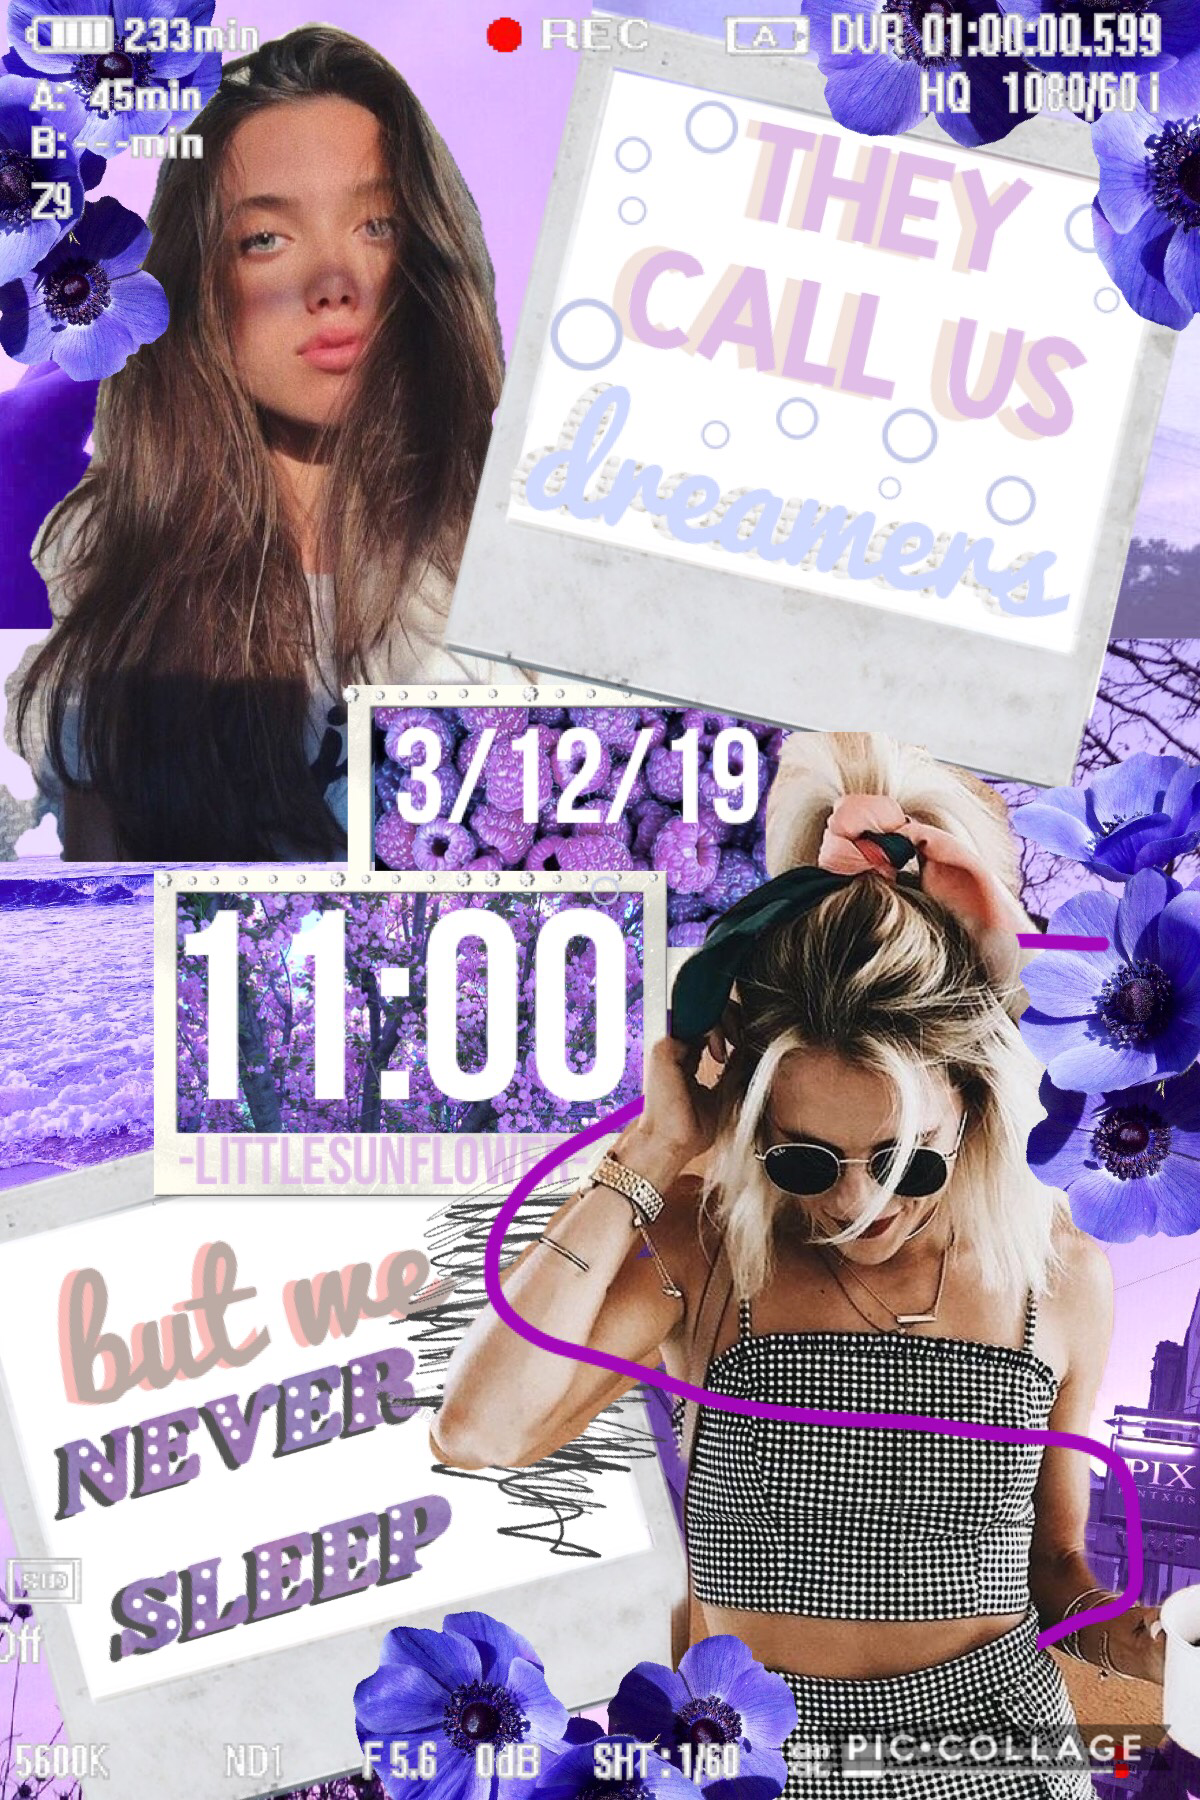 💜t a p💜 i think this one kinda cool... sorry i haven't posted in a while! pls go vote on my extras account! (-LittleSunflowerExtras-) anyone wanna collab? 💕 cat